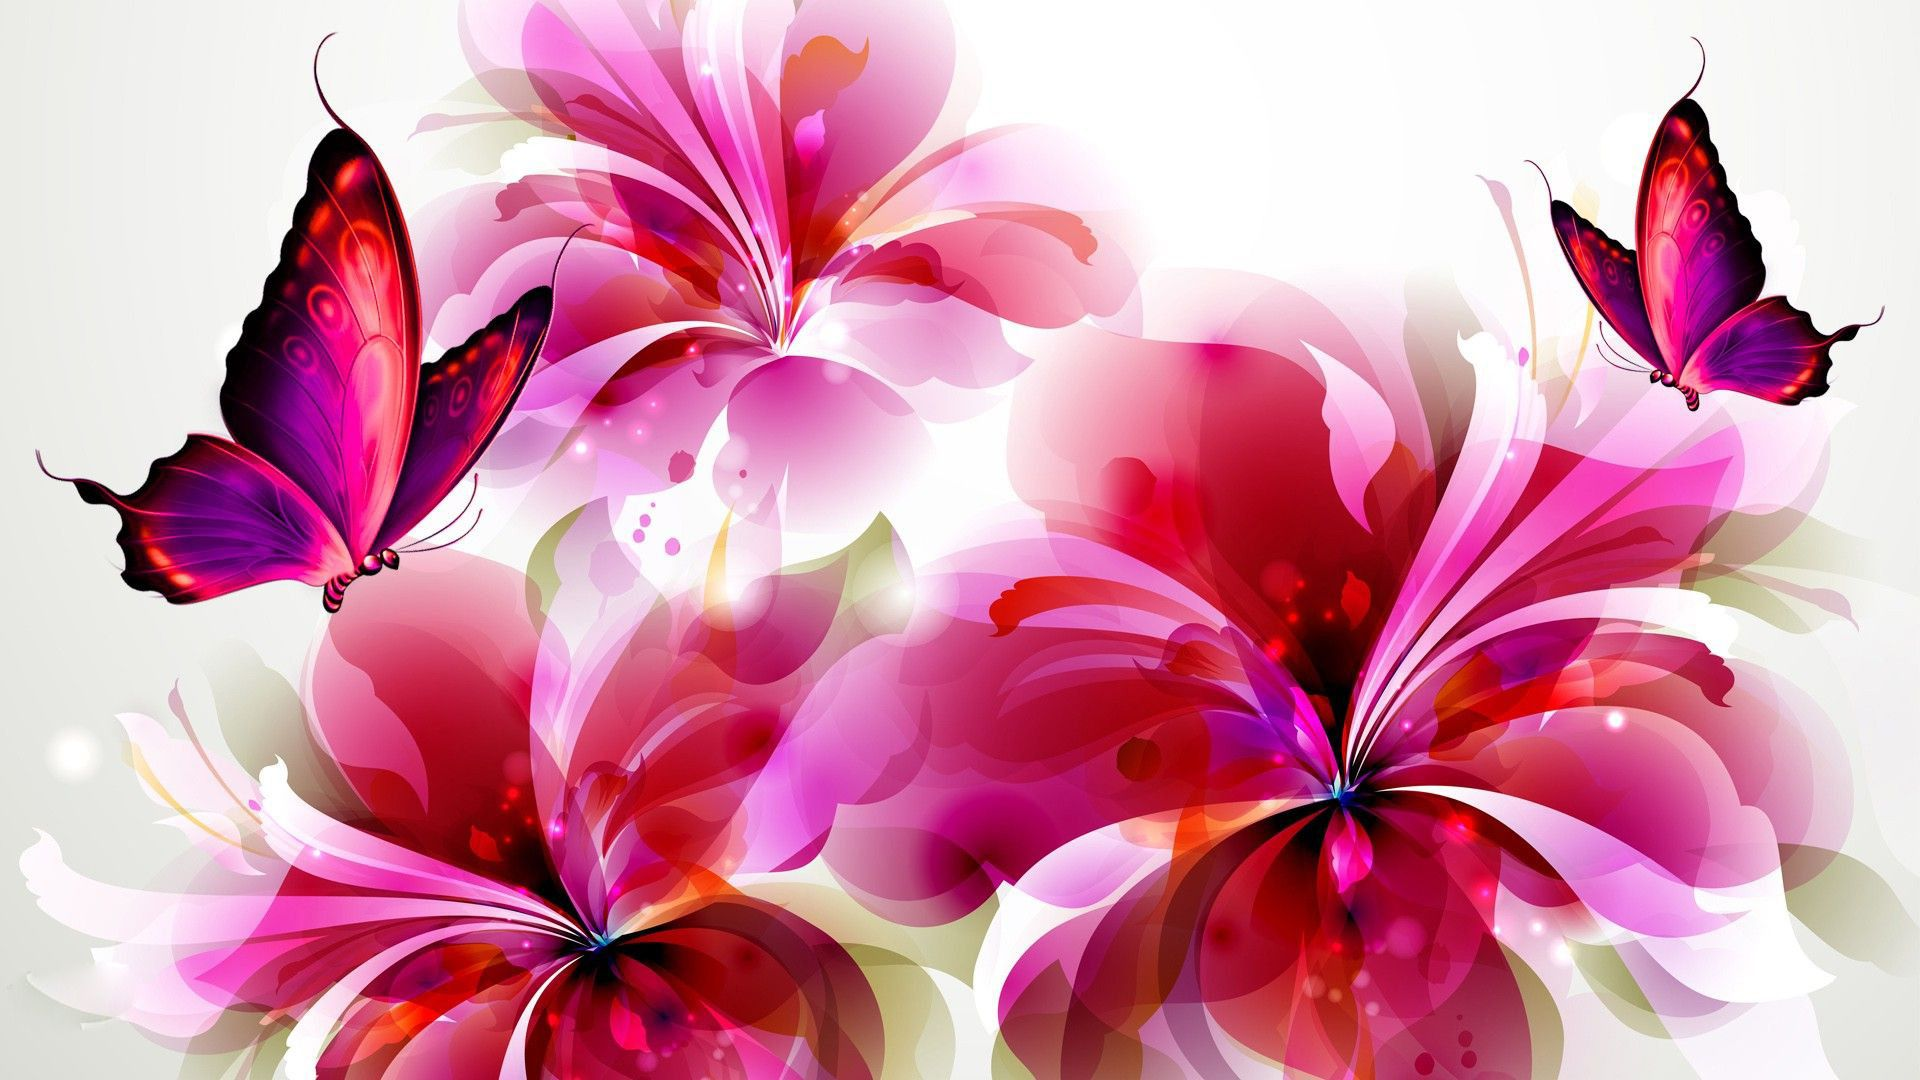 Butterflies Flowers And Butterflies Digital Art Hd Wallpaper